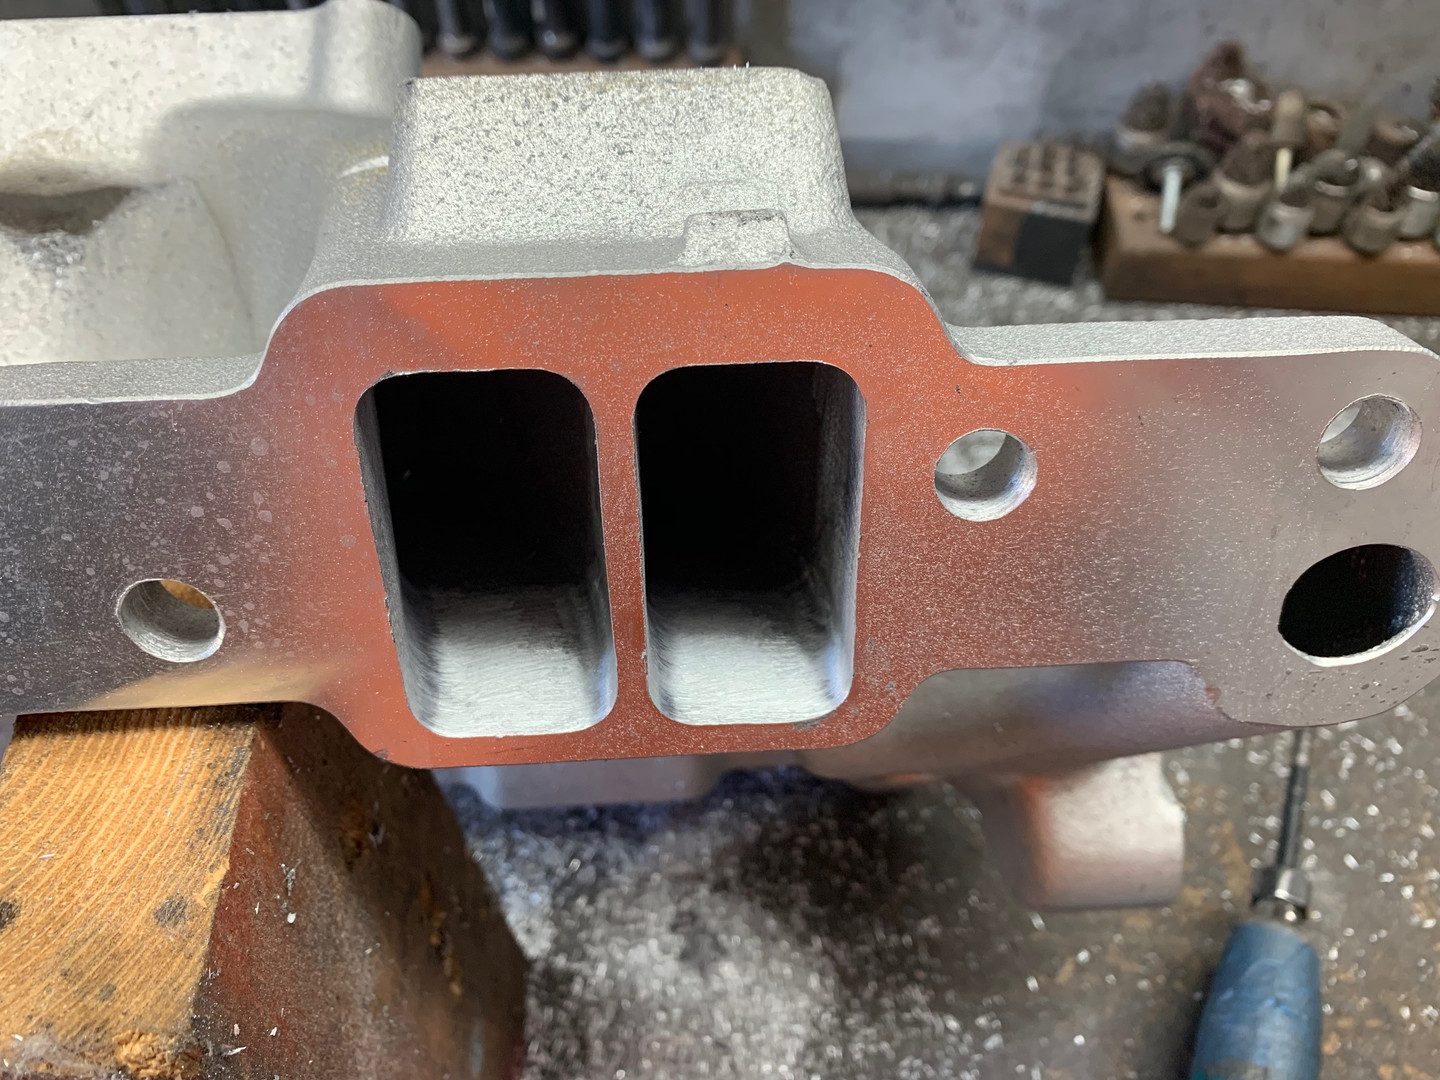 Edelbrock Victor Intake Manifold for a Pontiac 400 with fuel injection